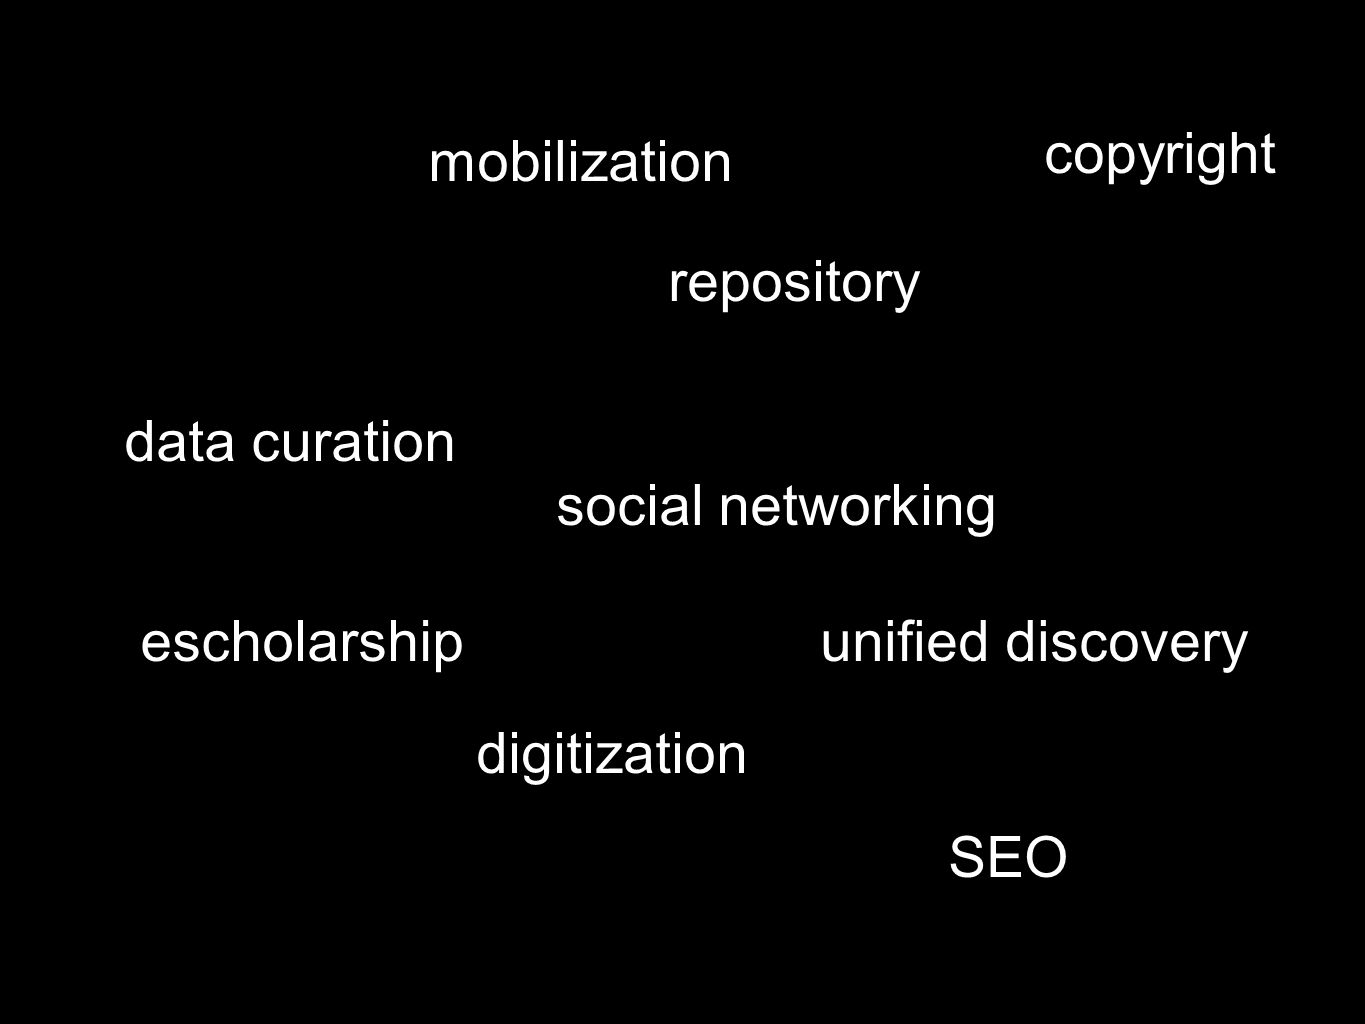 repository social networking digitization mobilization copyright data curation unified discoveryescholarship SEO